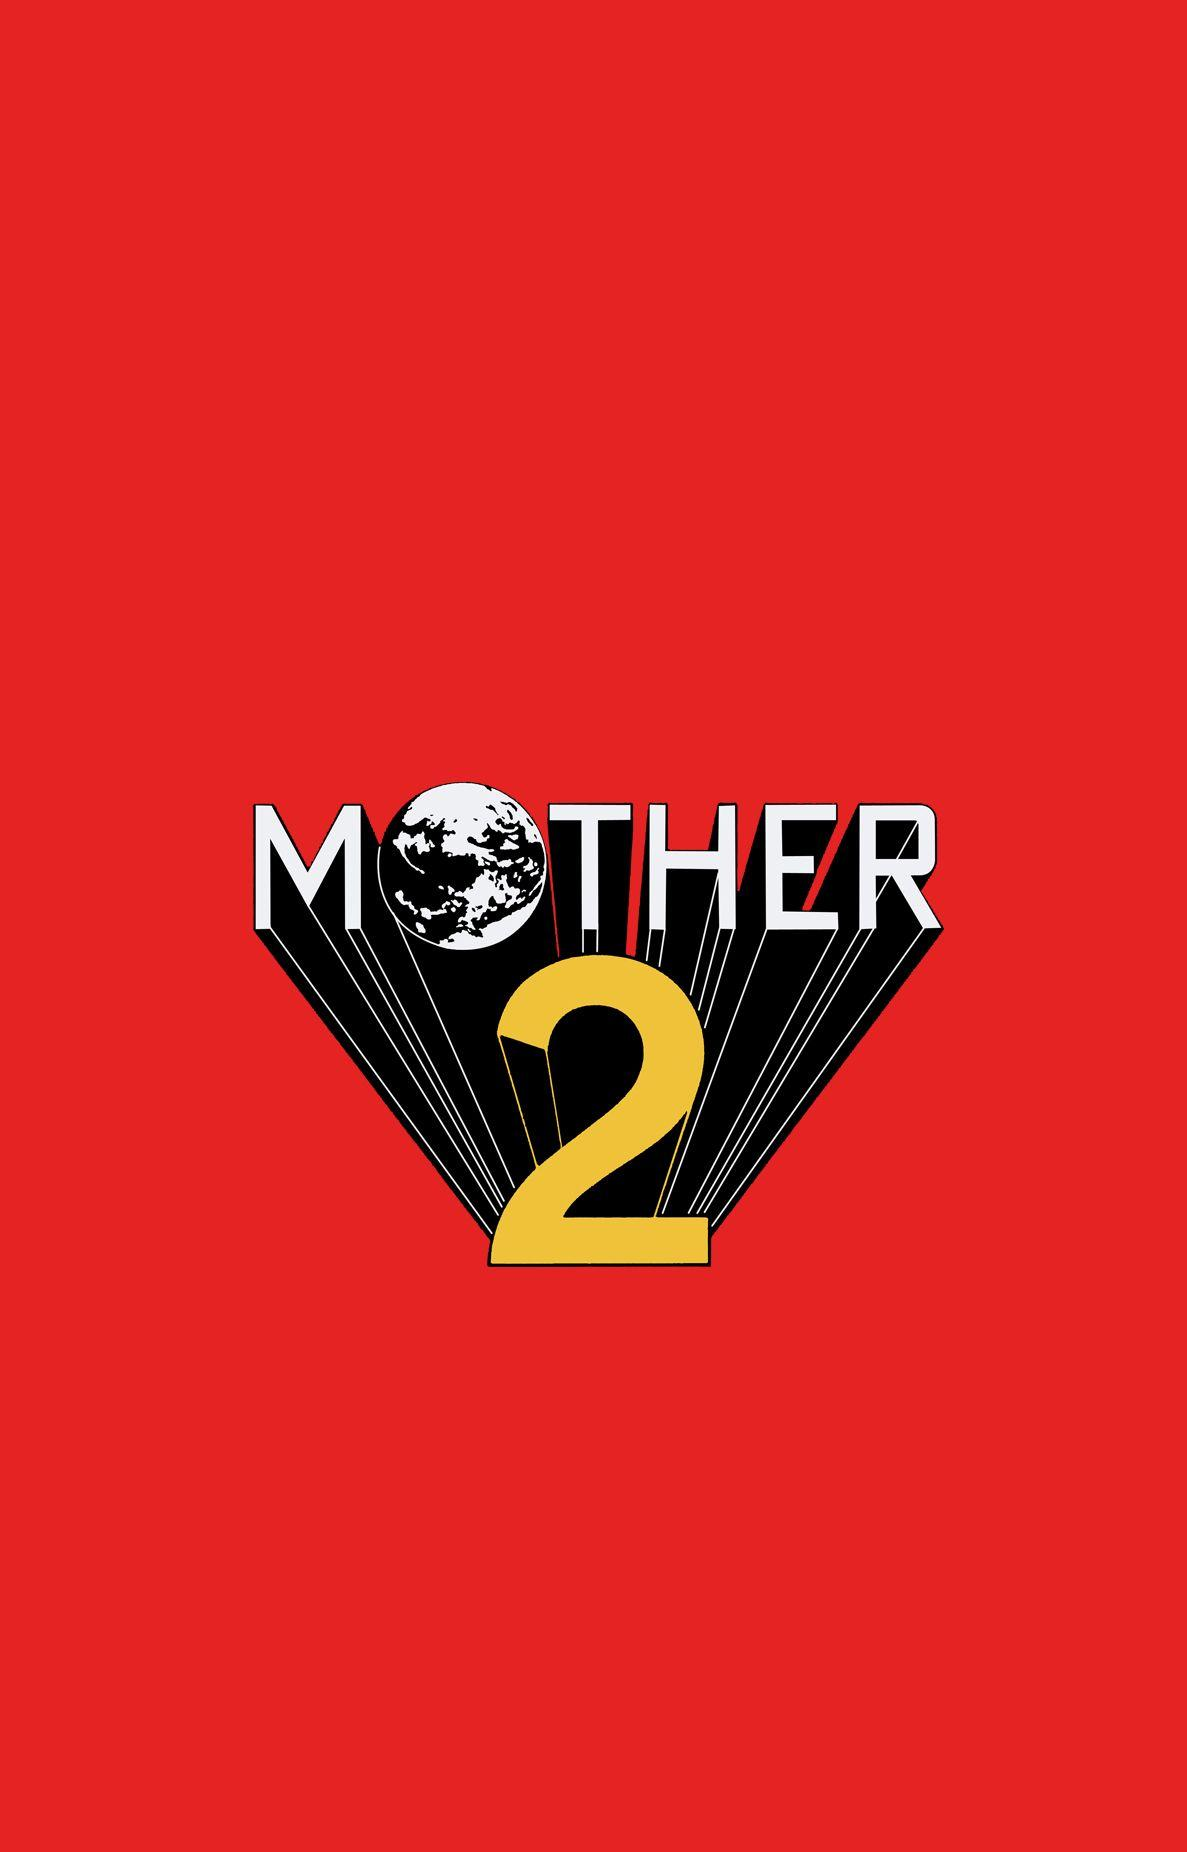 Mother 3 Wallpapers - Wallpaper Cave